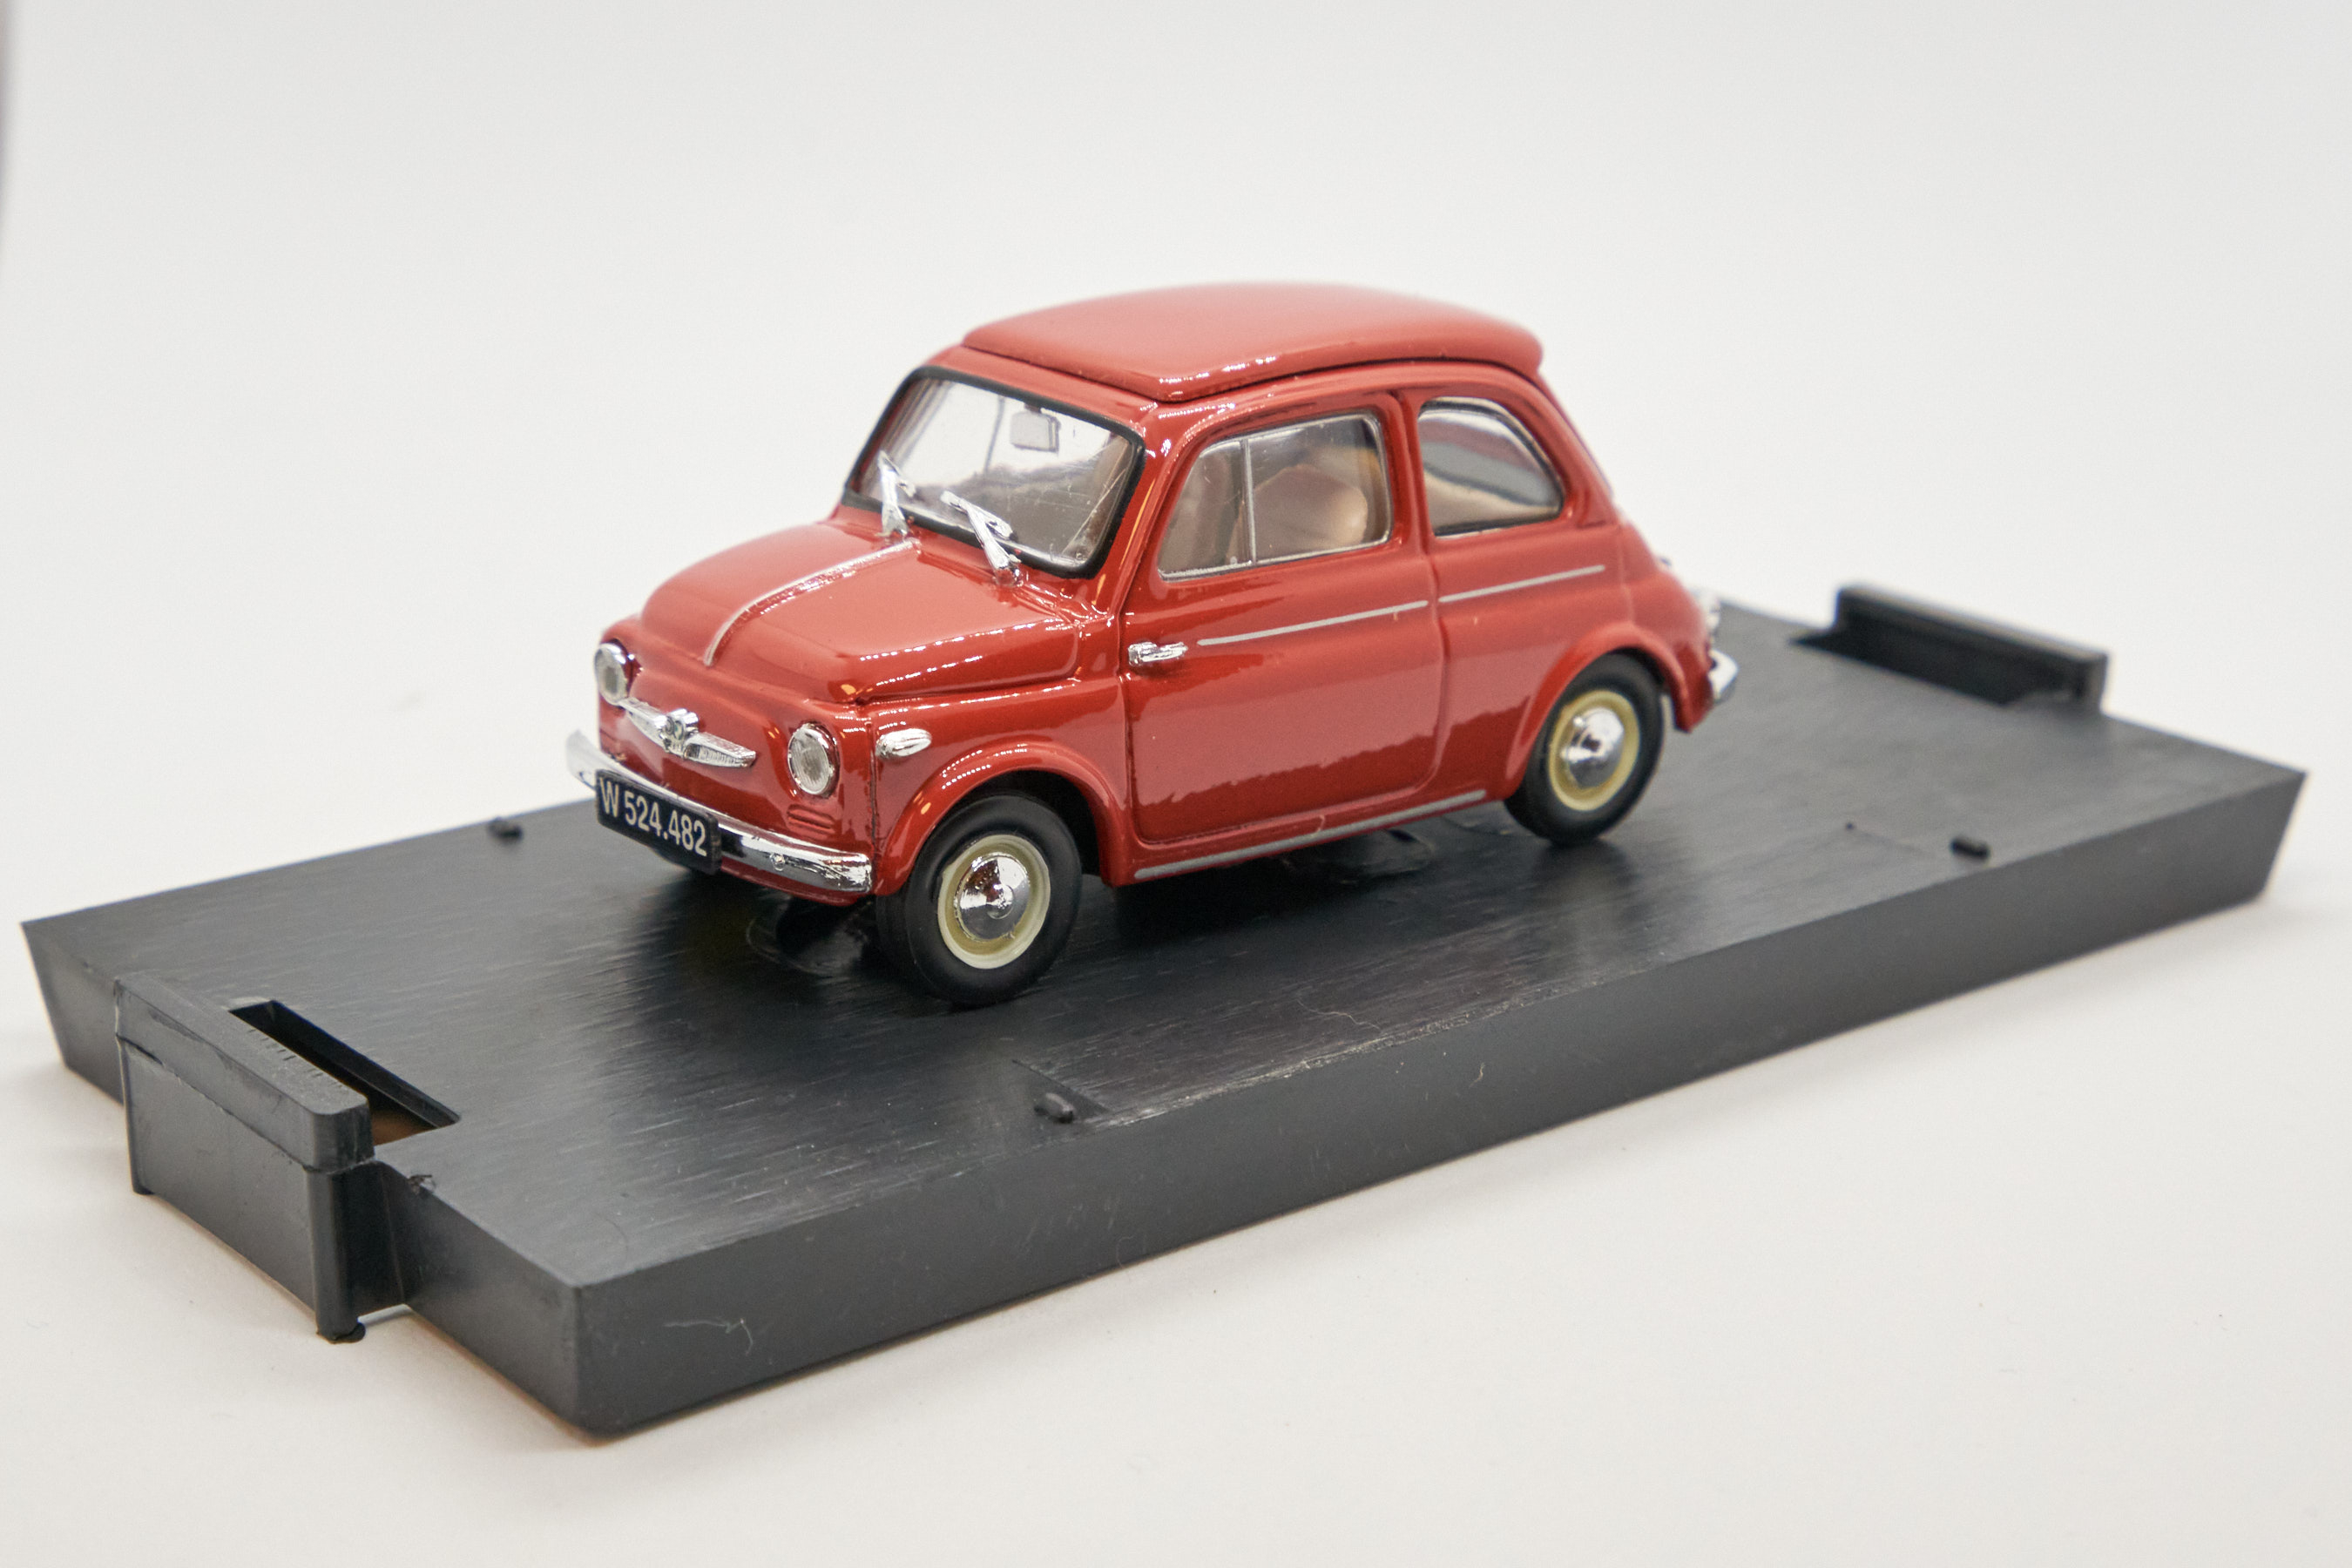 Steyr Puch 500D Rosso Corallo 1959 1/43 Brumm 100% Made In Italy